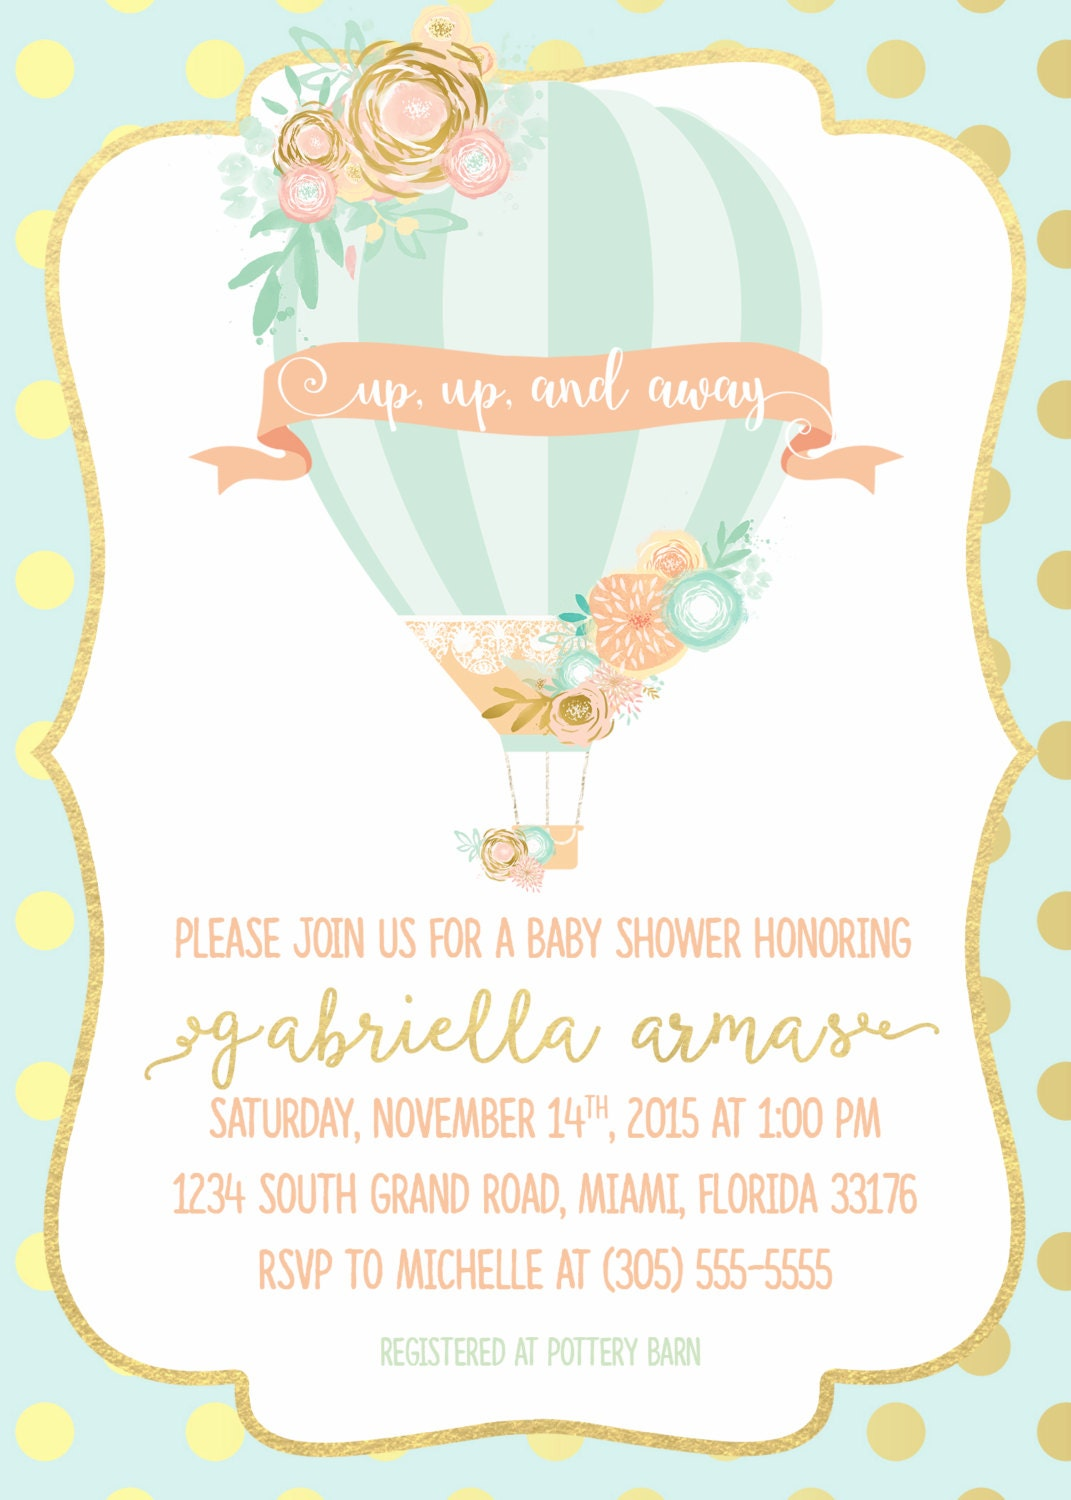 Hot air balloon baby shower invitation hot air balloon invitation hot air balloon baby shower invitation hot air balloon invitation floral baby shower invite girl french parisian chic printable invite filmwisefo Image collections